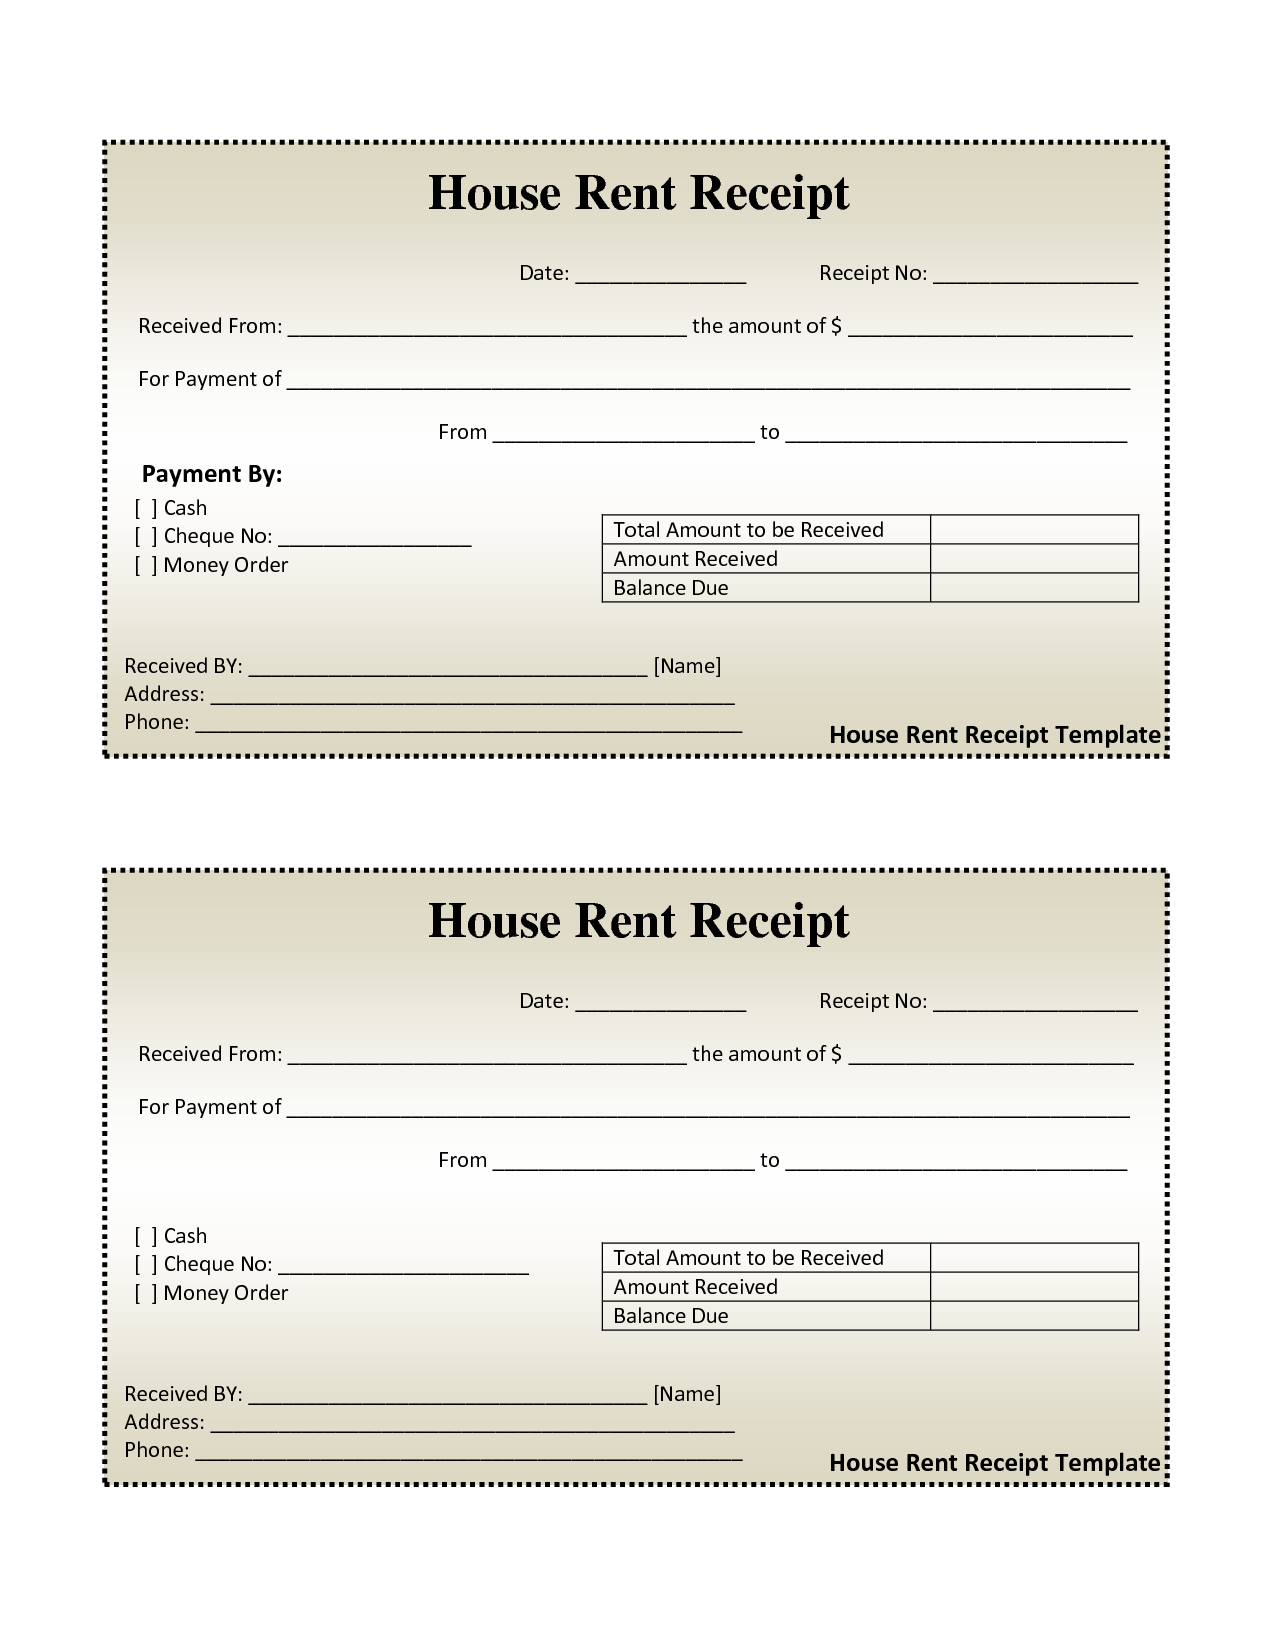 House Rent Invoice Template